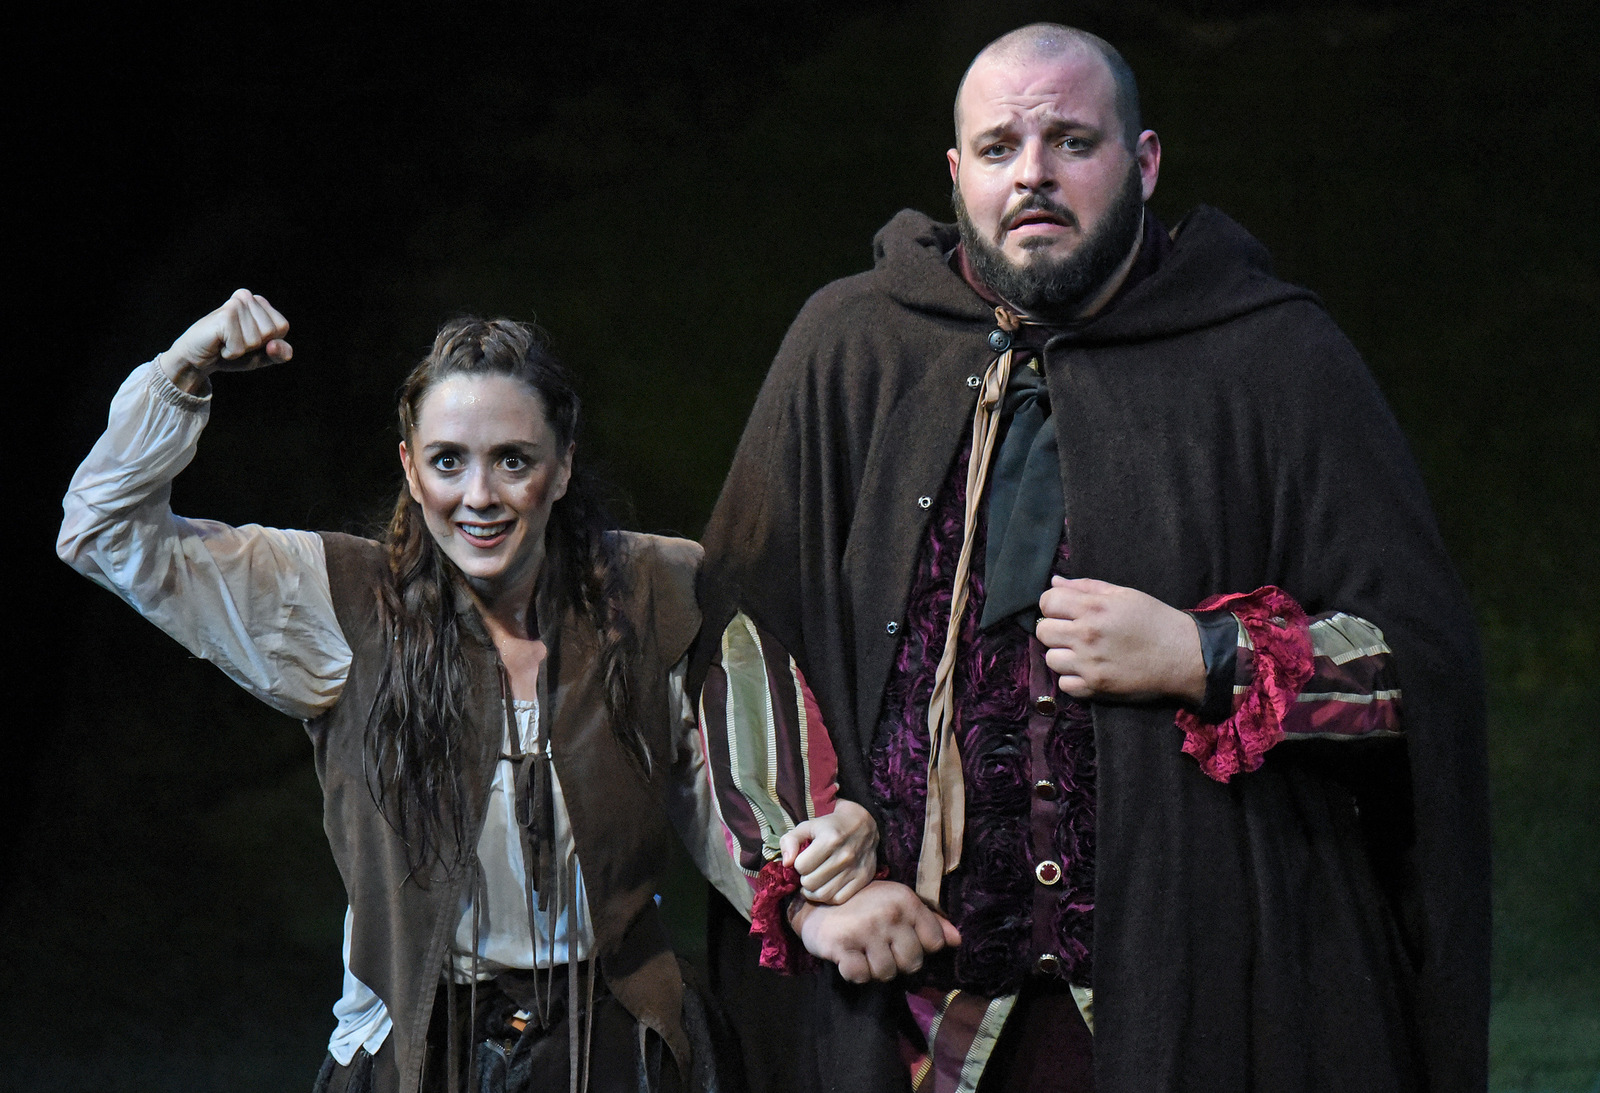 Vesturport and The Wallis' The Heart of Robin Hood. Pictured (l-r): Christina Bennett Lind and Daniel Franzese. Photo credit: Kevin Parry for The Wallis.